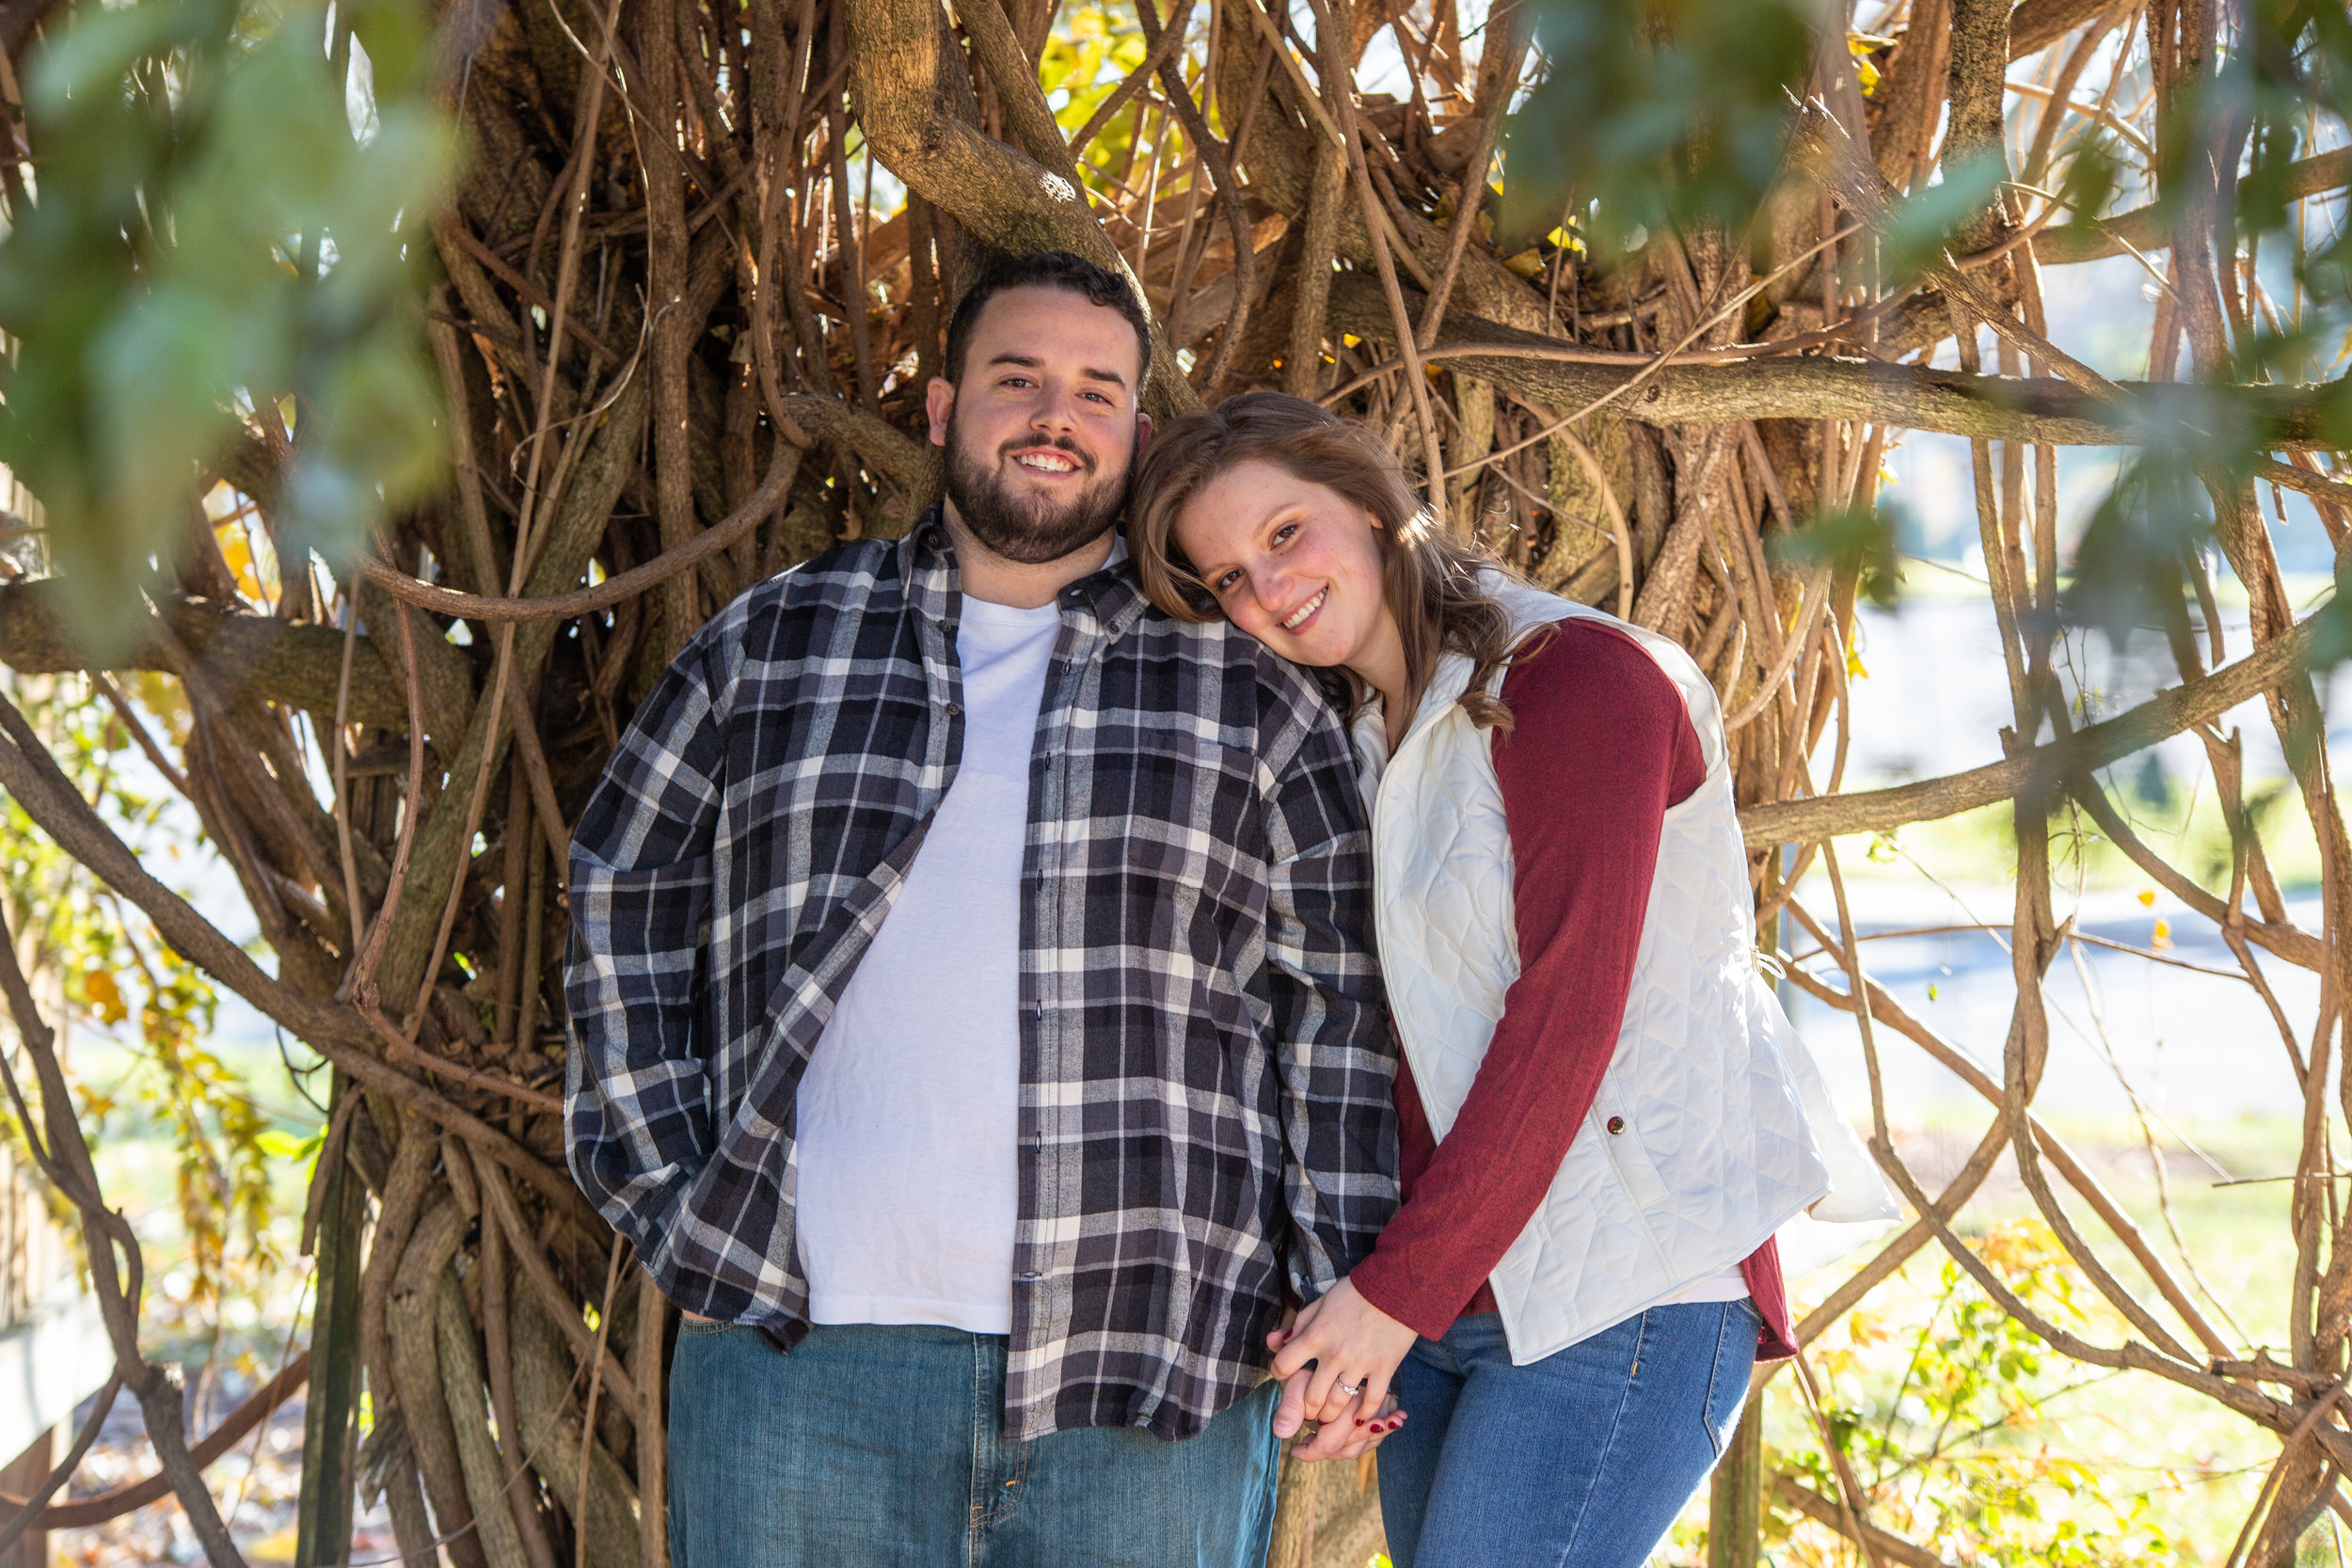 Fall-Vines-gaze-love-couple-shoot-photography-blacksburg-roanoke-love-lover-loving-engaged-wedding-Virginia-Tech-campus-framing-lean-bright